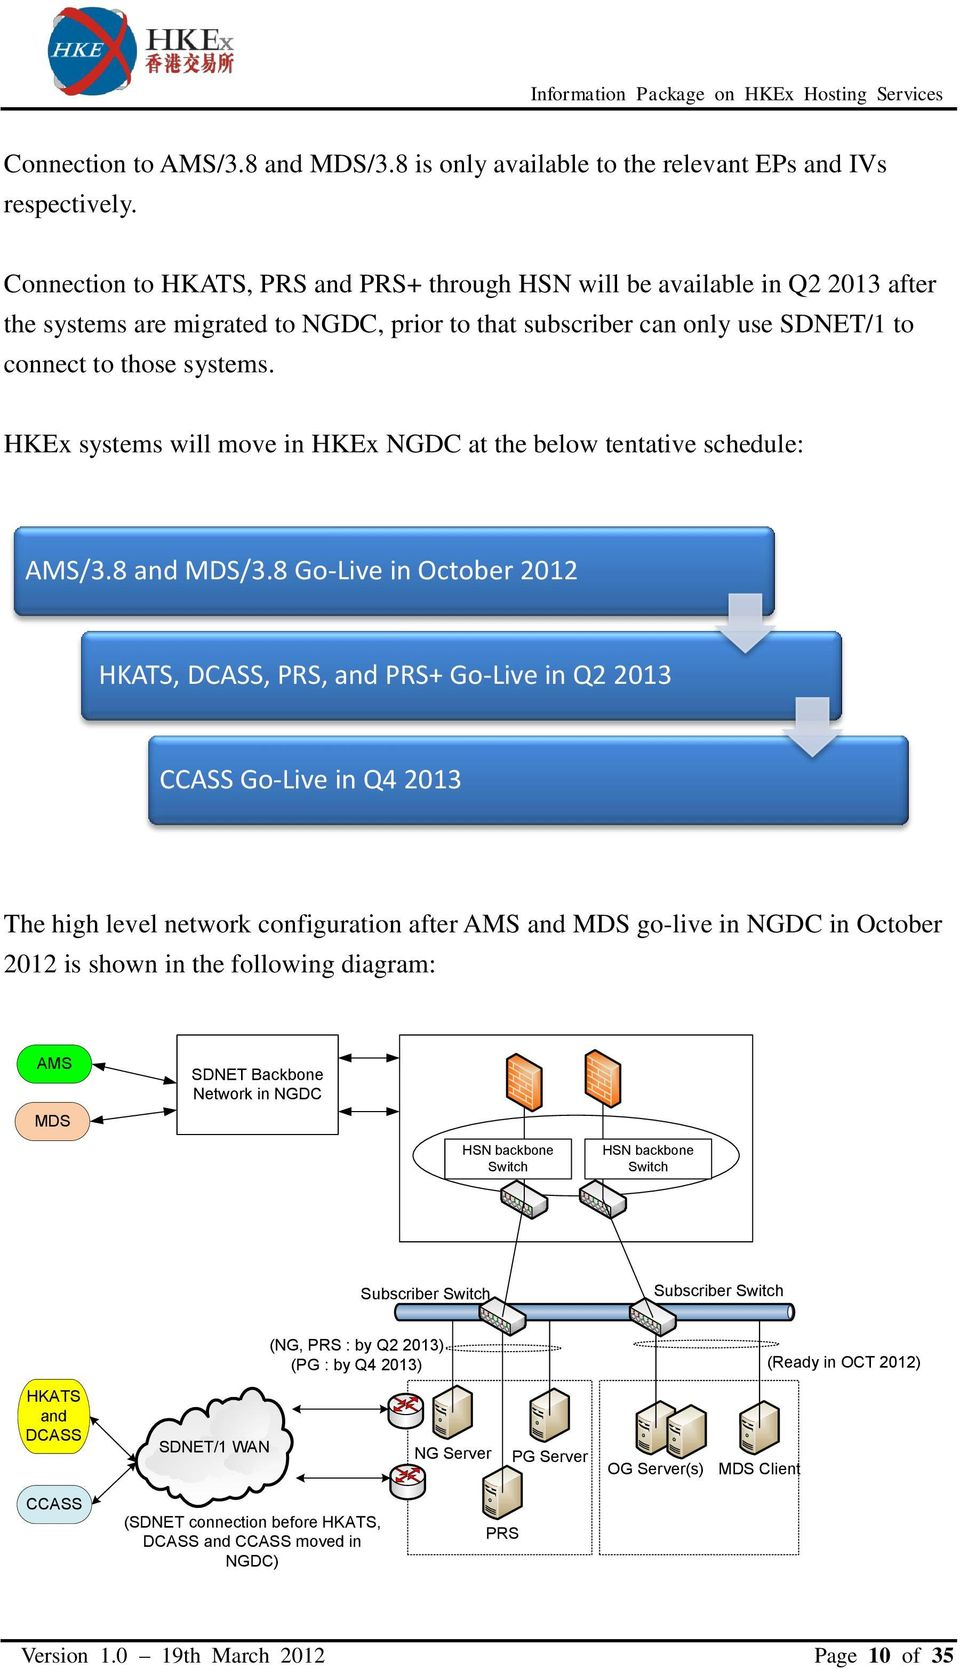 HKEx systems will move in HKEx NGDC at the below tentative schedule: AMS/3.8 and MDS/3.